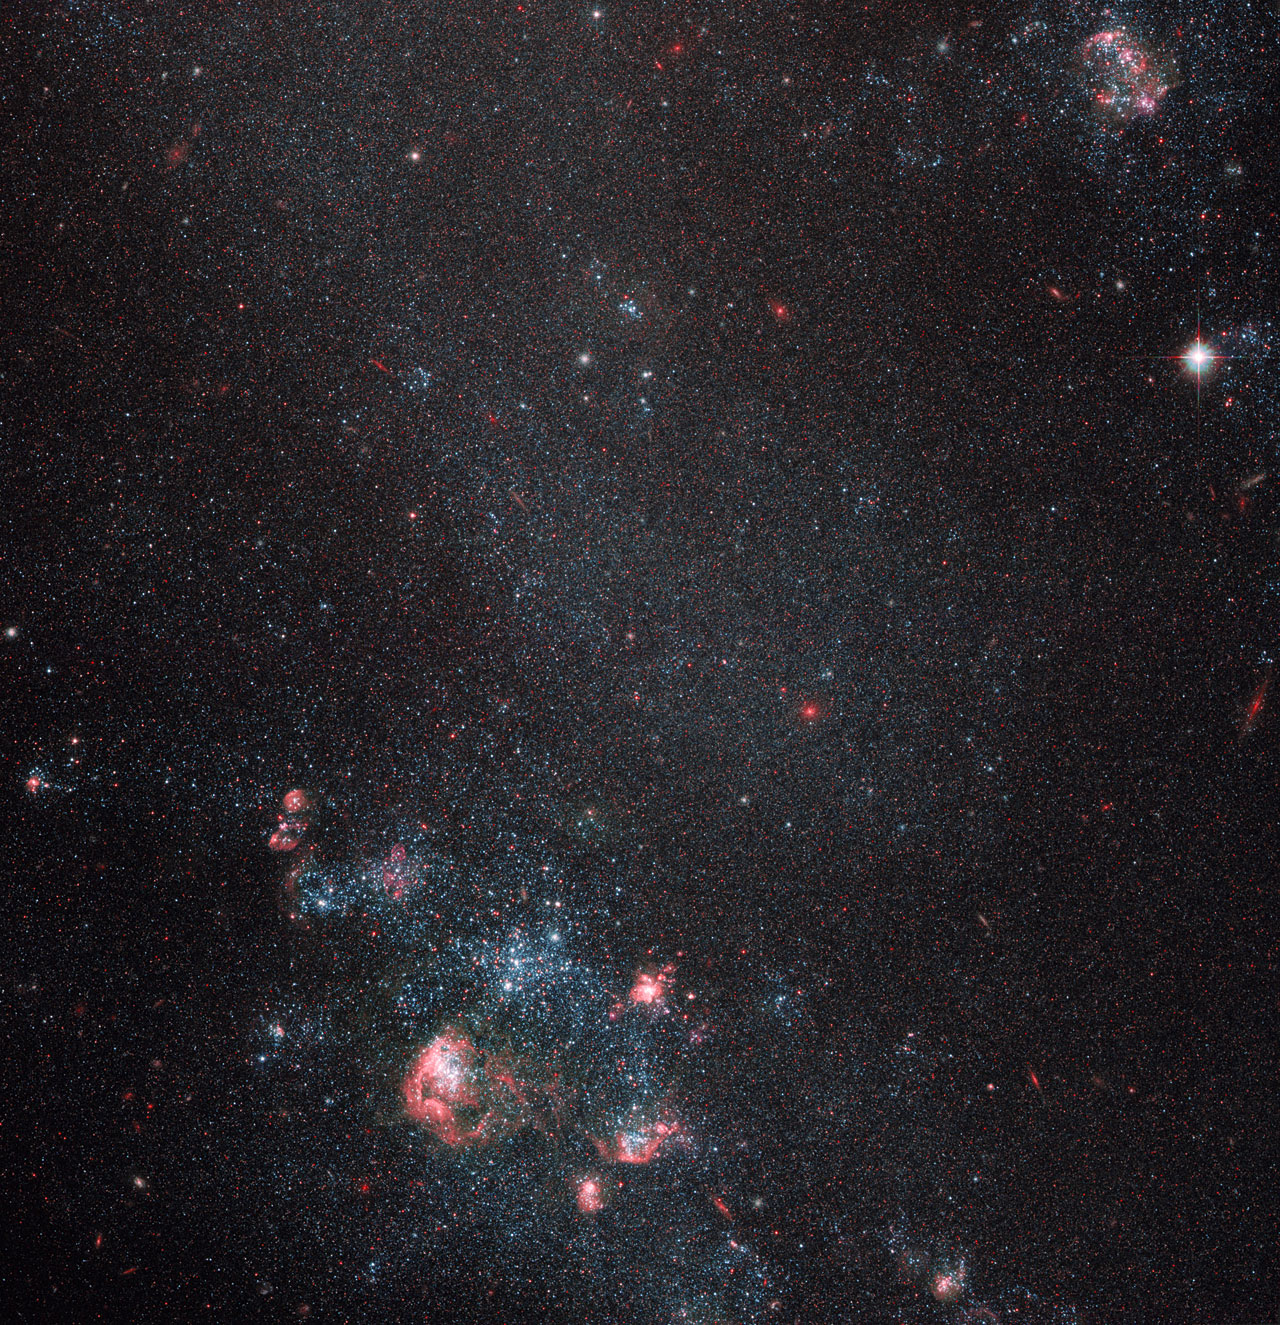 Faint galaxy with popping pink features